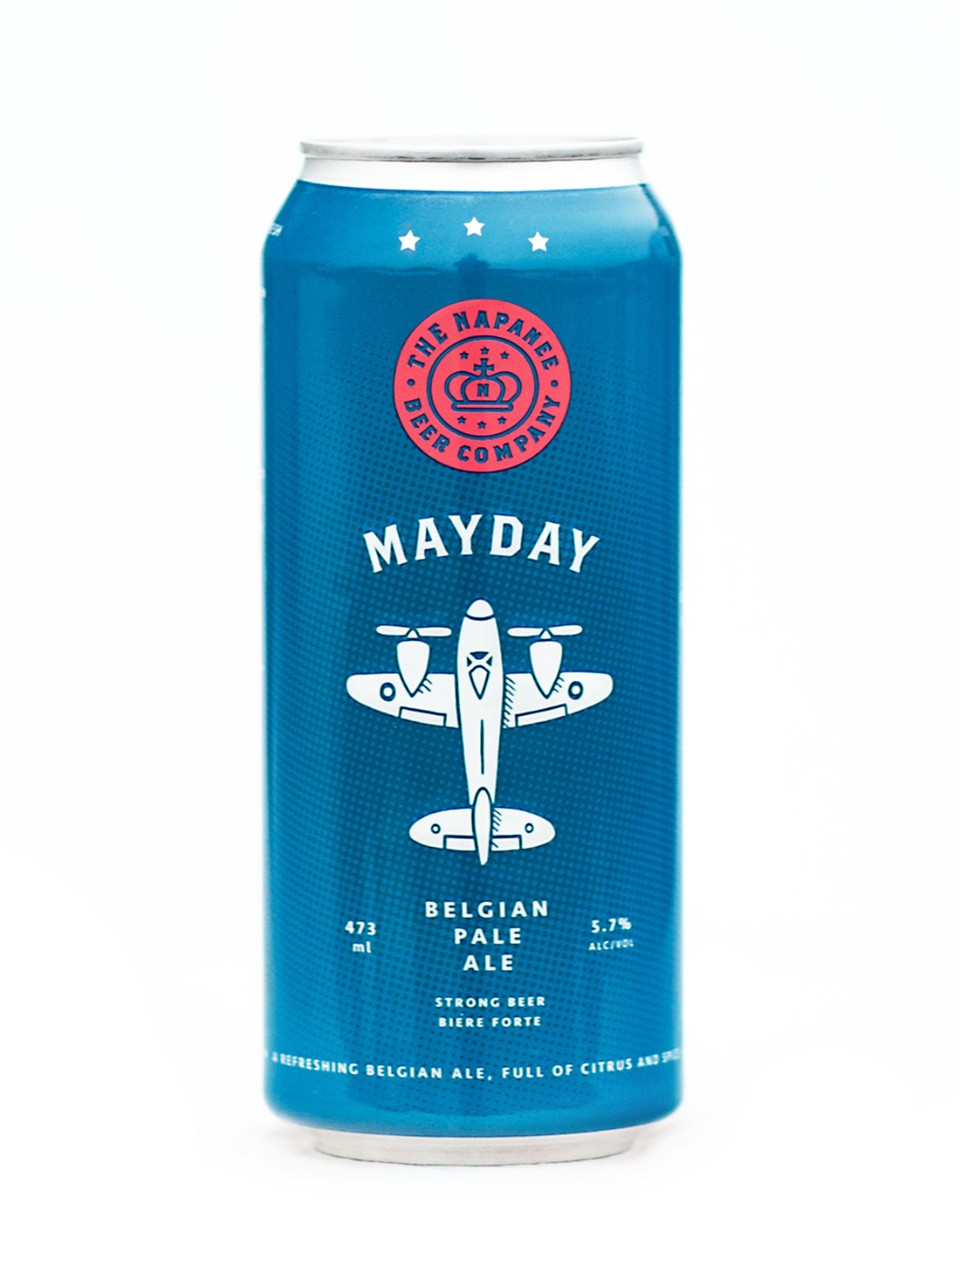 The Napanee Beer Company Mayday Pale Ale